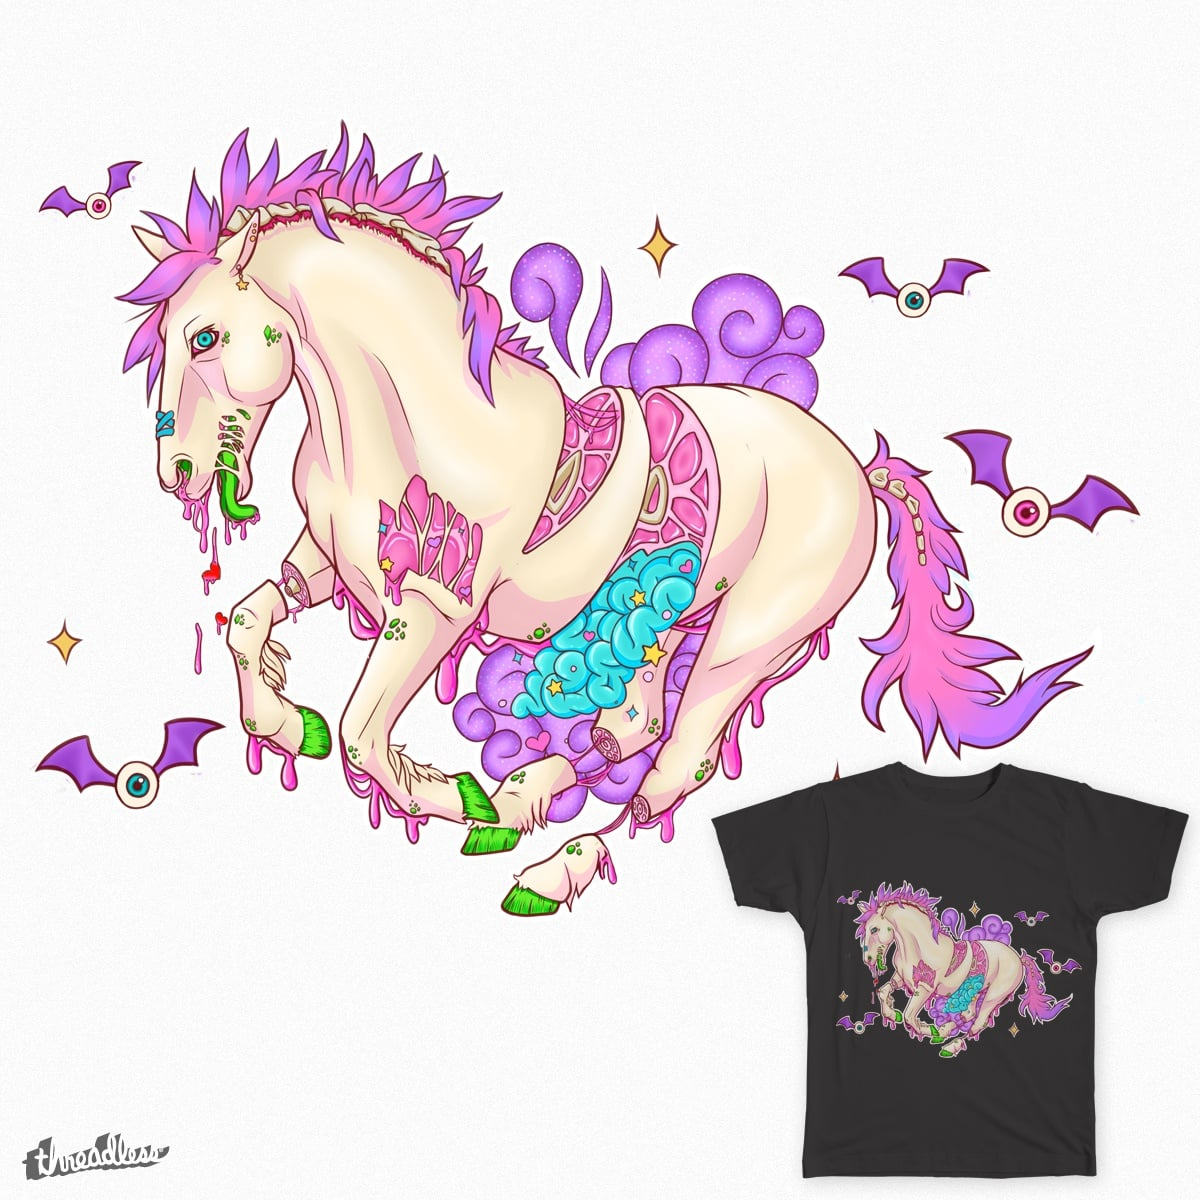 Score Candy Gore Horse By Sodapopcandy On Threadless Cheyenne さんのボード「candy gore」で、他にもたくさんのピンを見つけましょう。 deviantart is the world's largest online social community for artists and art enthusiasts, allowing people to. score candy gore horse by sodapopcandy